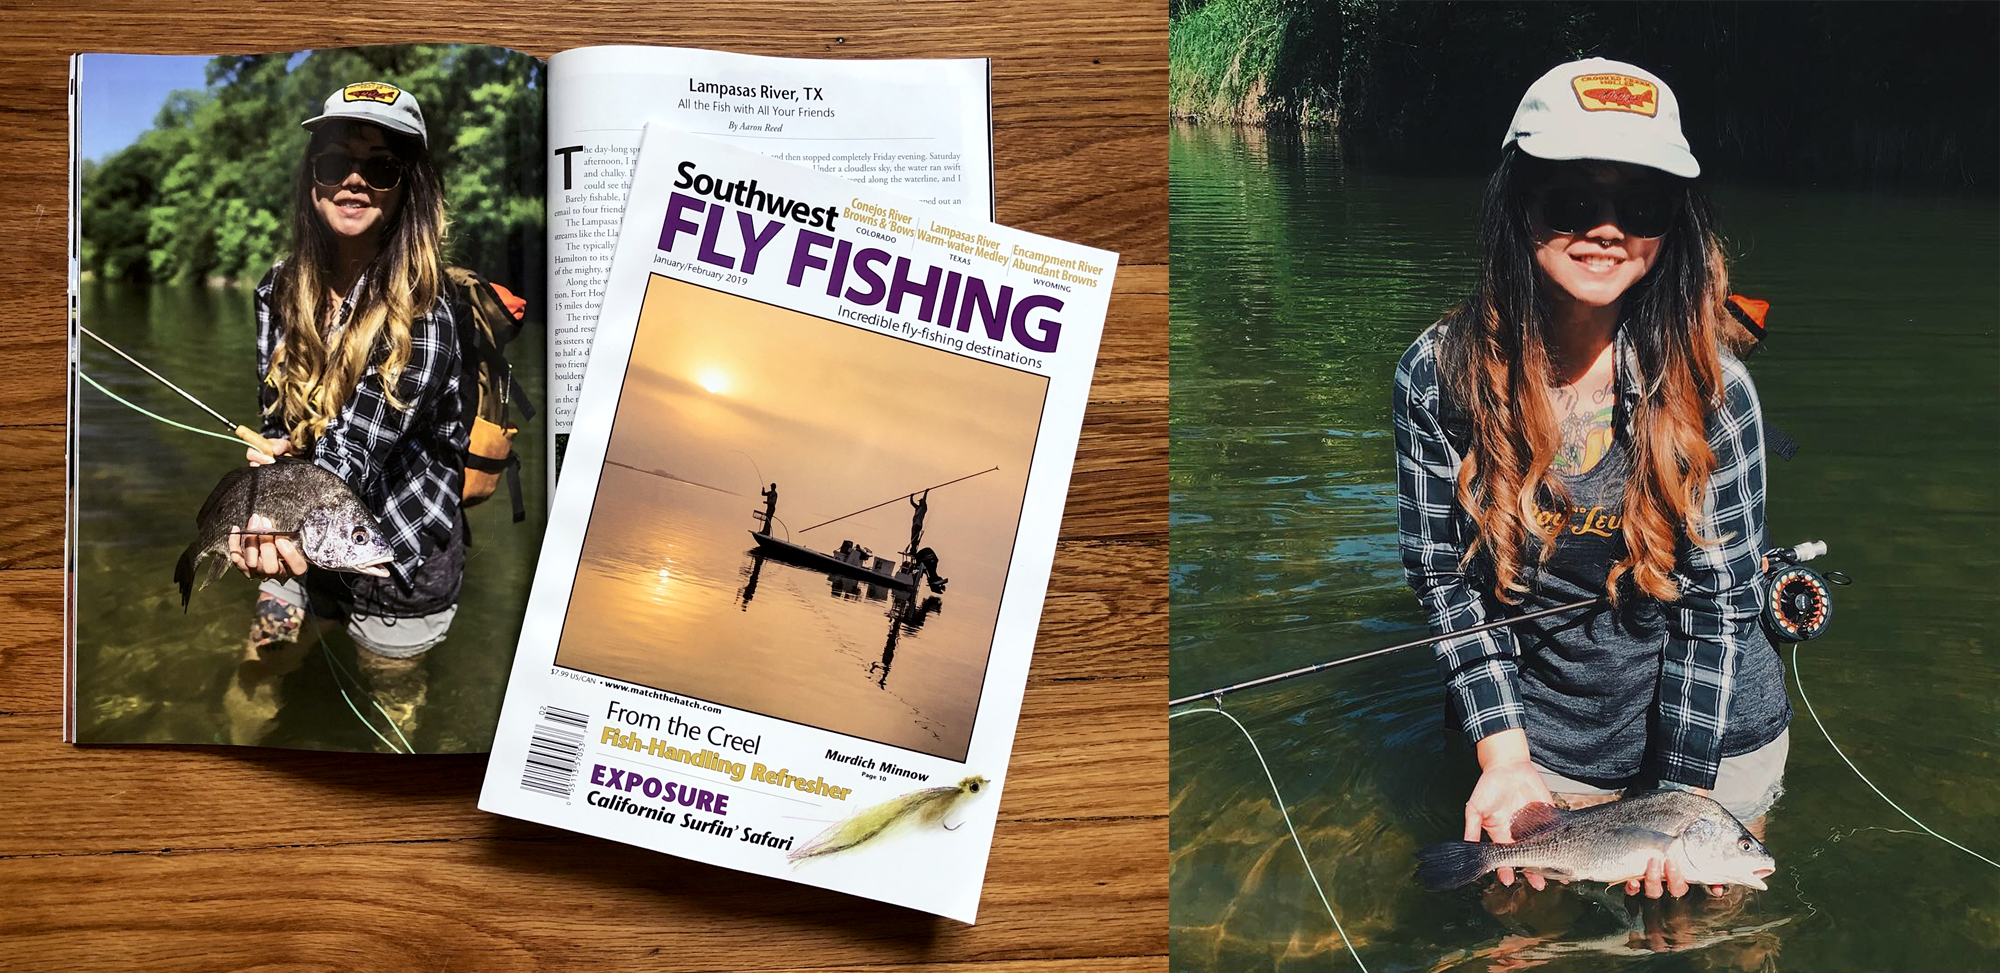 I am featured in the Jan/Feb 2019 issue of Southwest Fly Fishing Magazine. Article by Aaron Reed